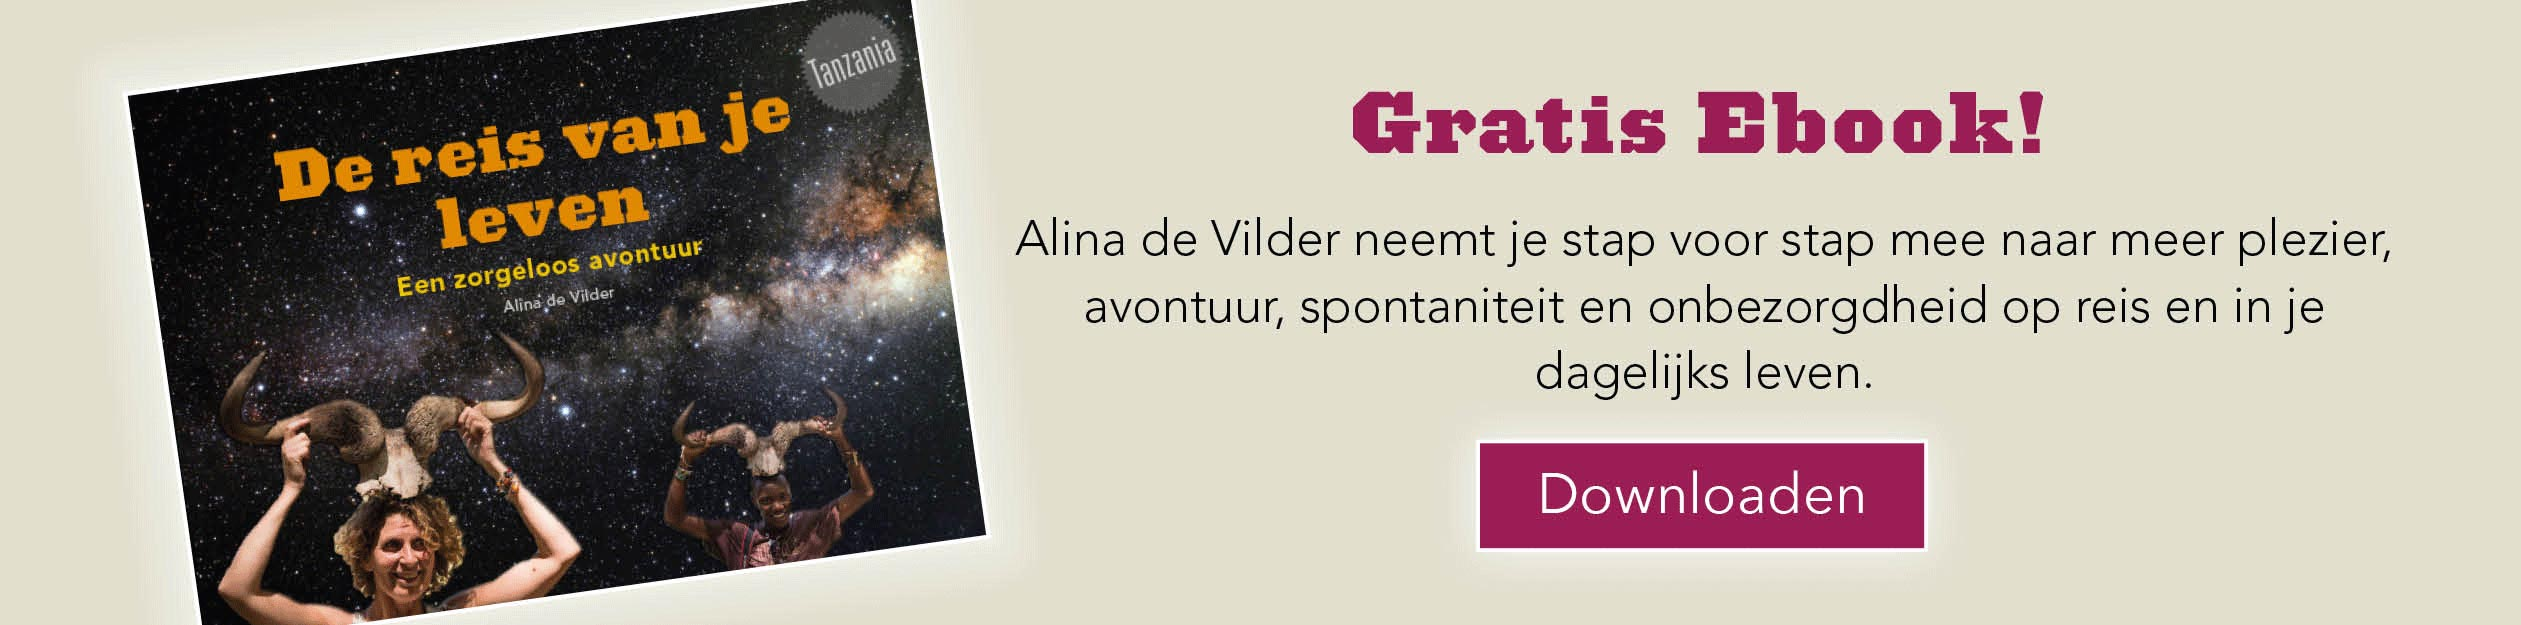 banner gratis e-book mindful adventure